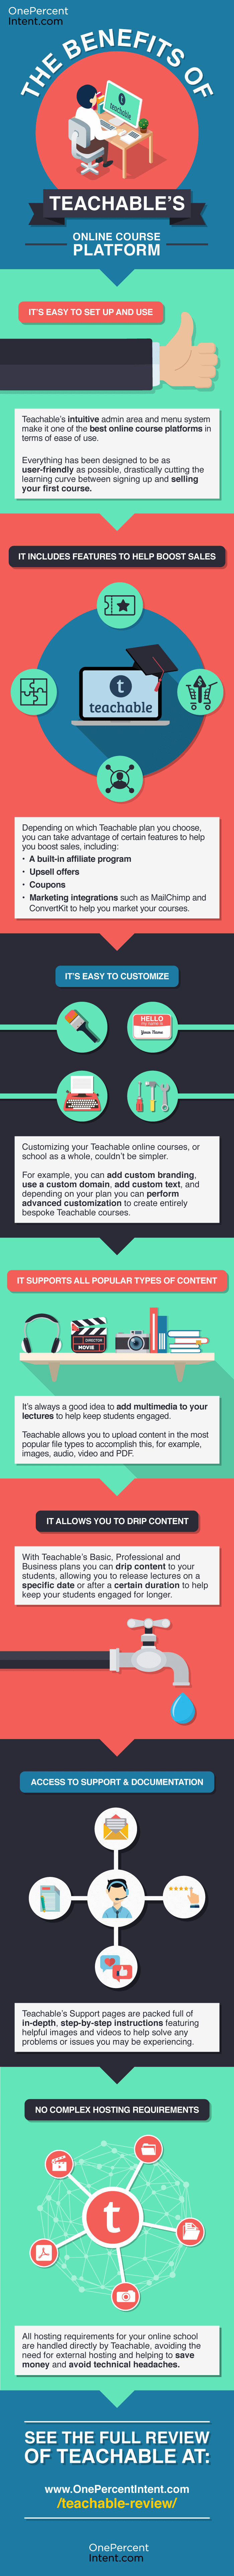 OnePercentIntent infographic image - the benefits of using Teachable's online course platform